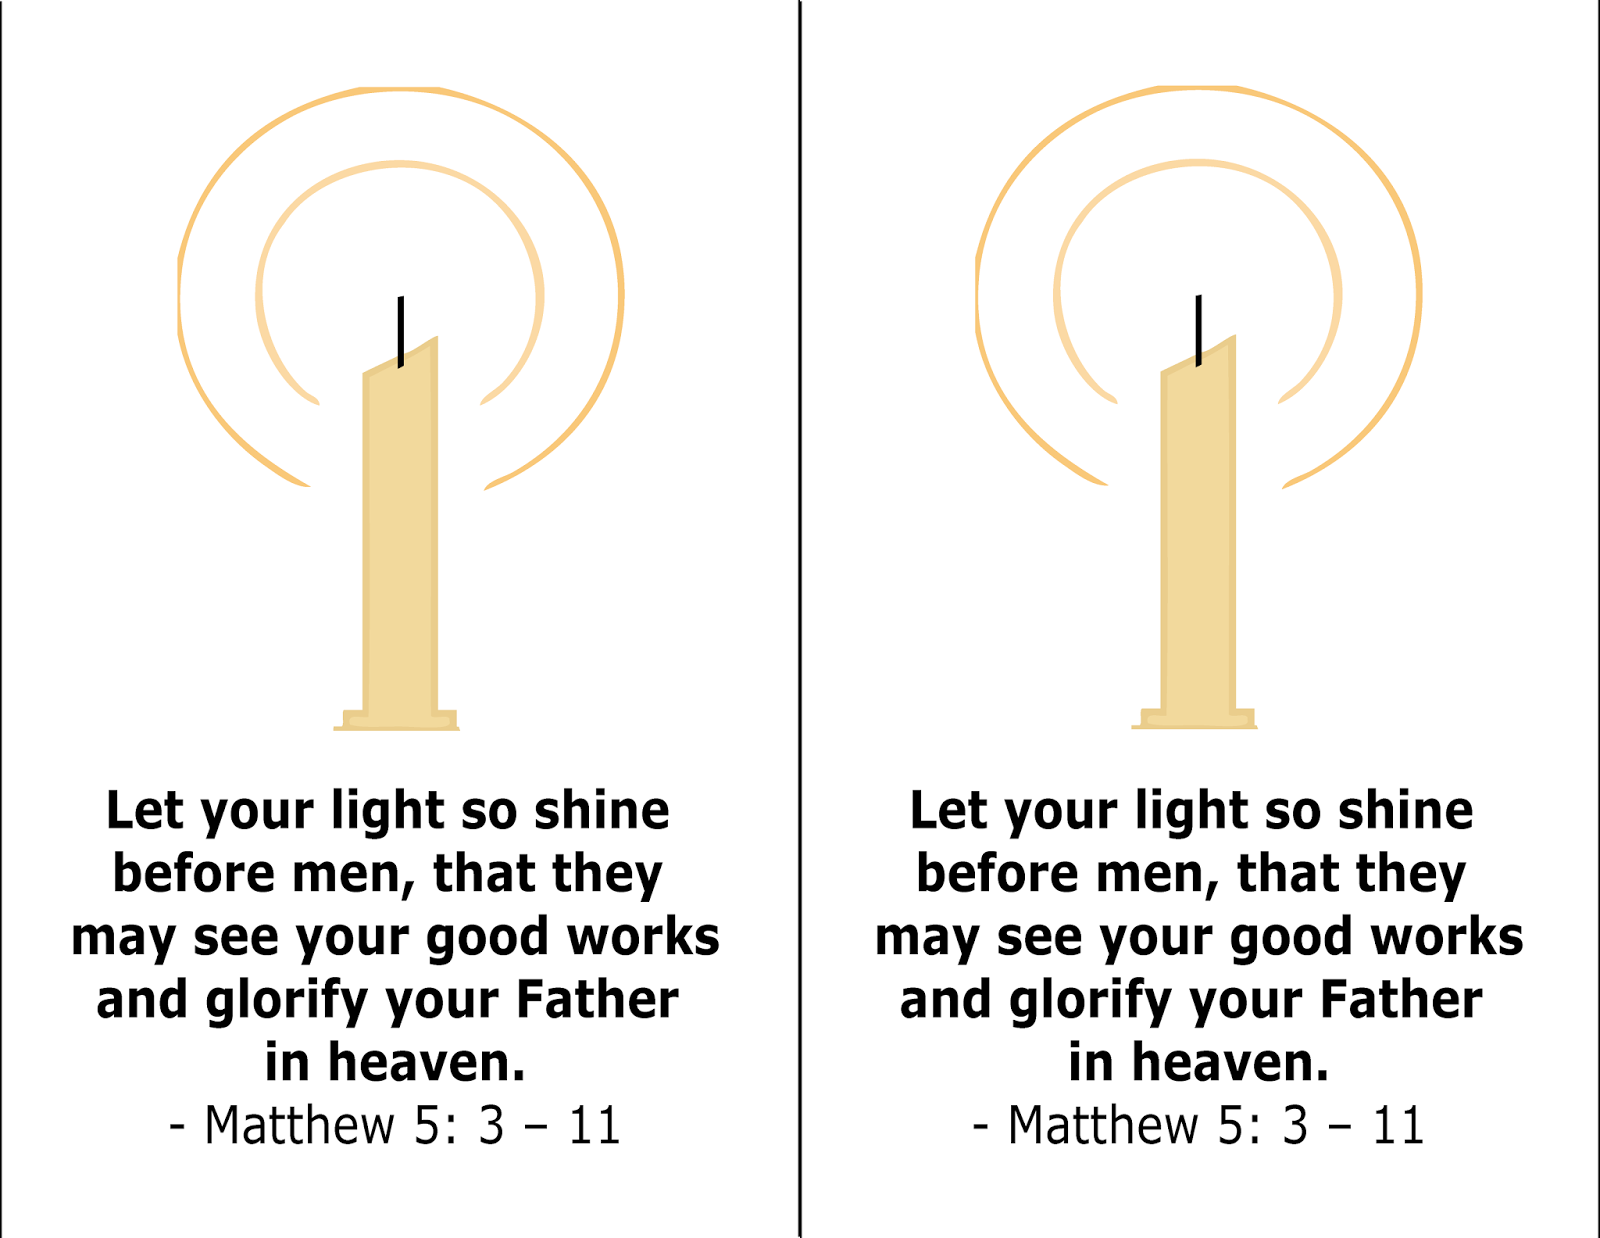 Many Mercies: Let Your Light So Shine - Candle Lesson for Kids